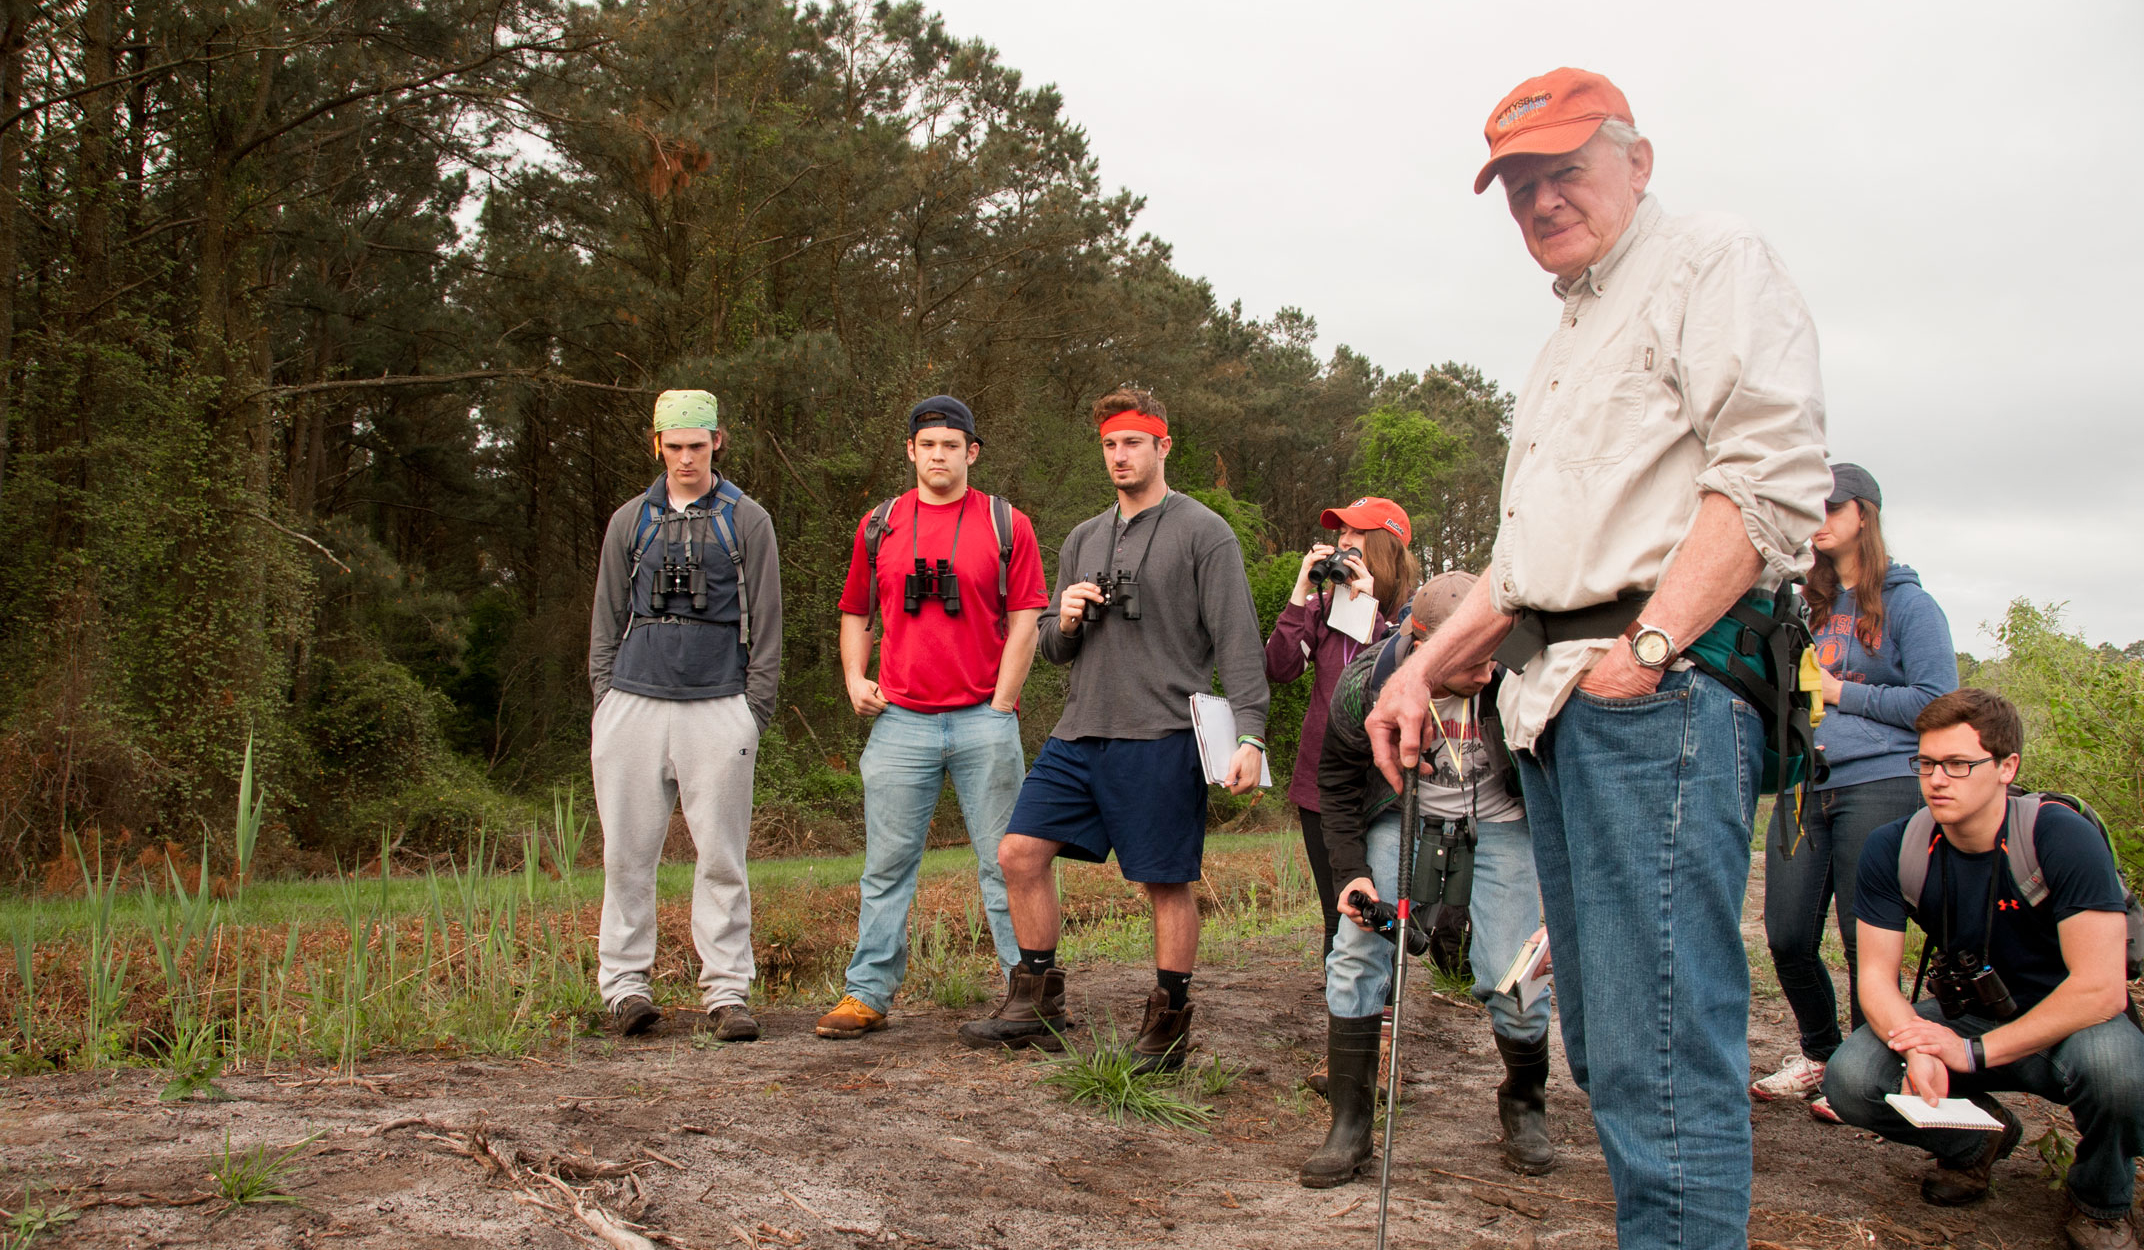 Professor Emeritus John Winkelmann on a field trip with students (Photo courtesy of Gettysburg College)